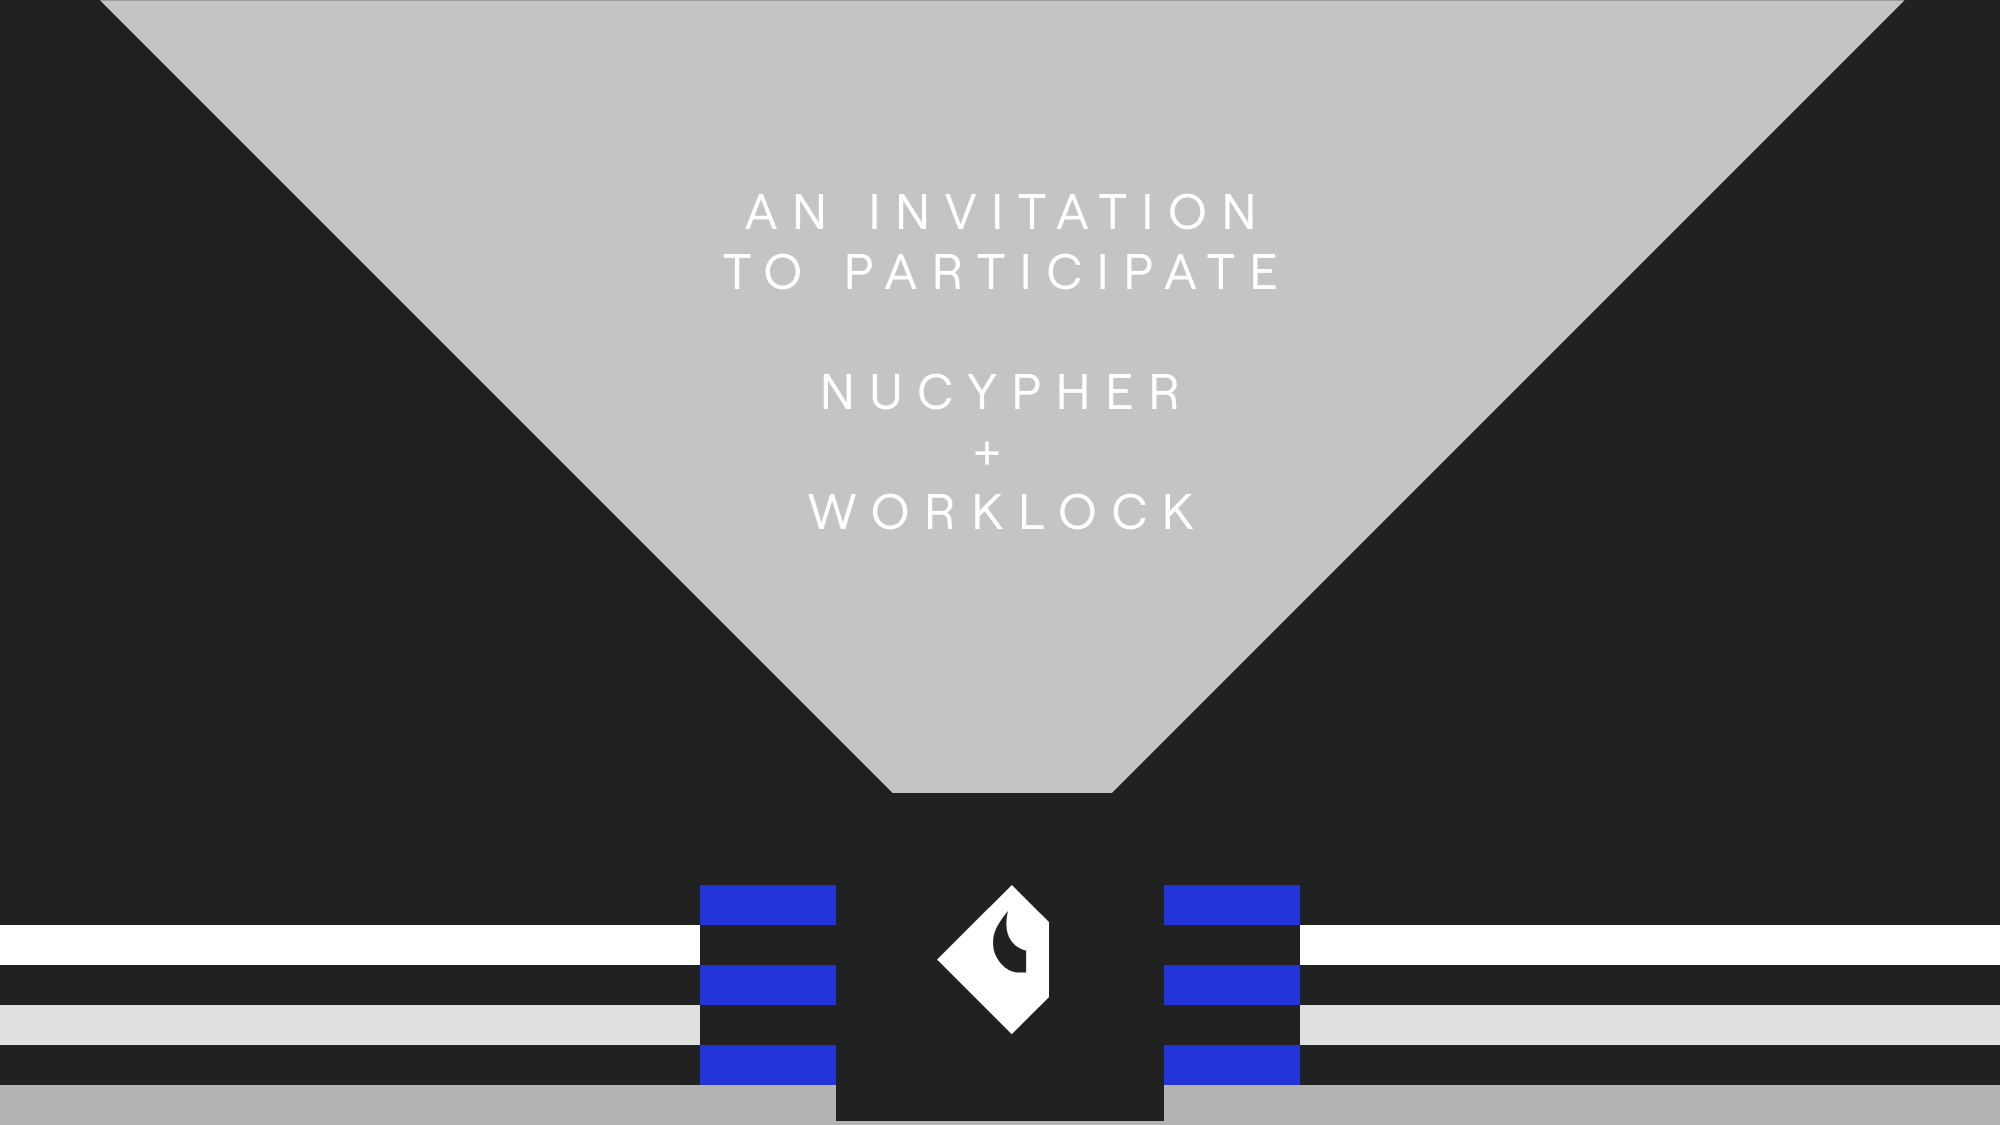 ETH enthusiasts: an invitation to participate in NuCypher's WorkLock